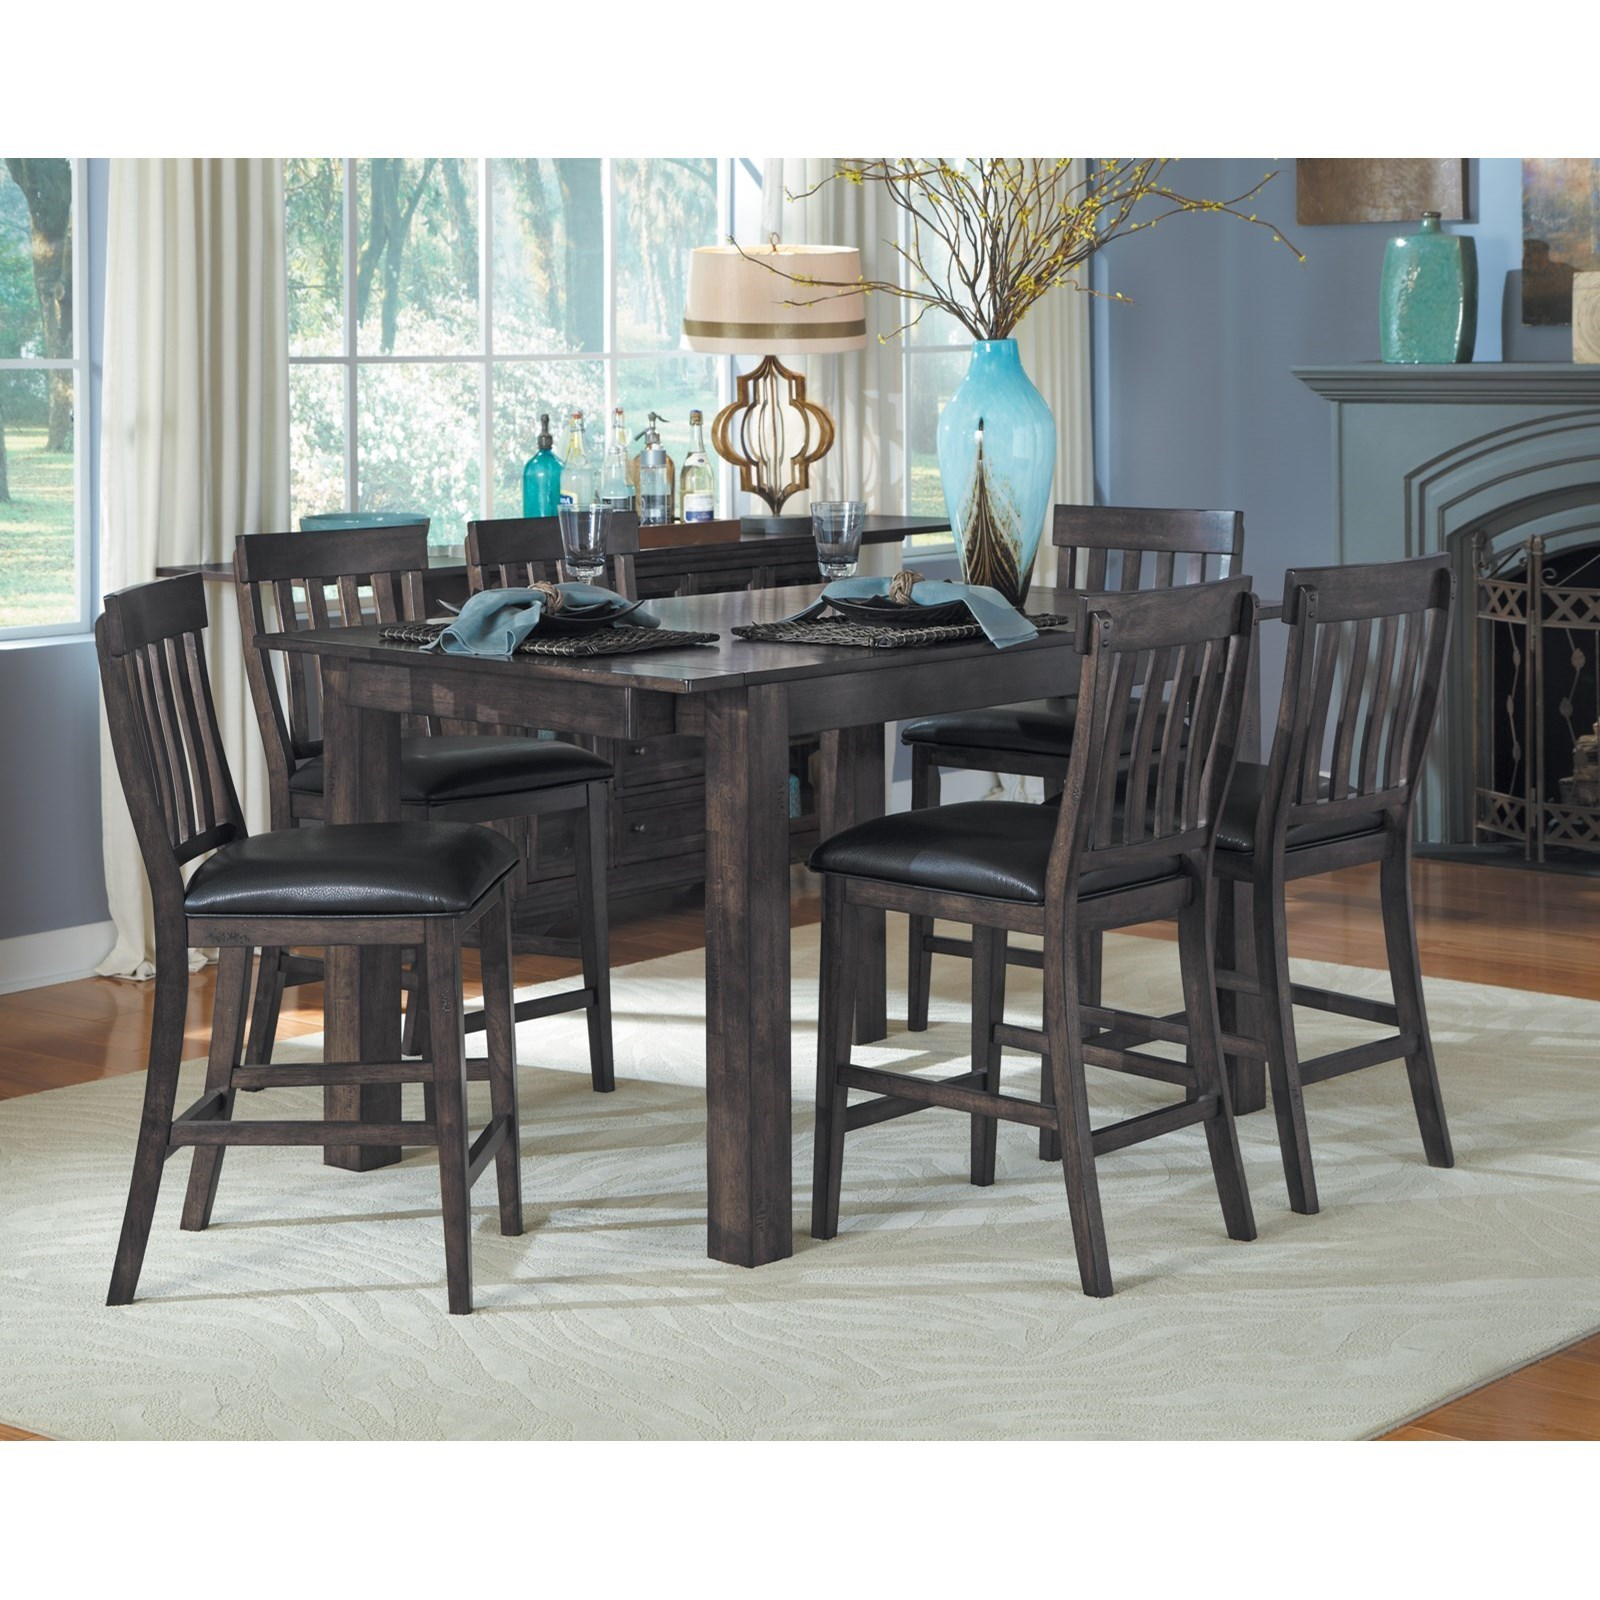 Mariposa Dining Room Group by AAmerica at Sam Levitz Outlet